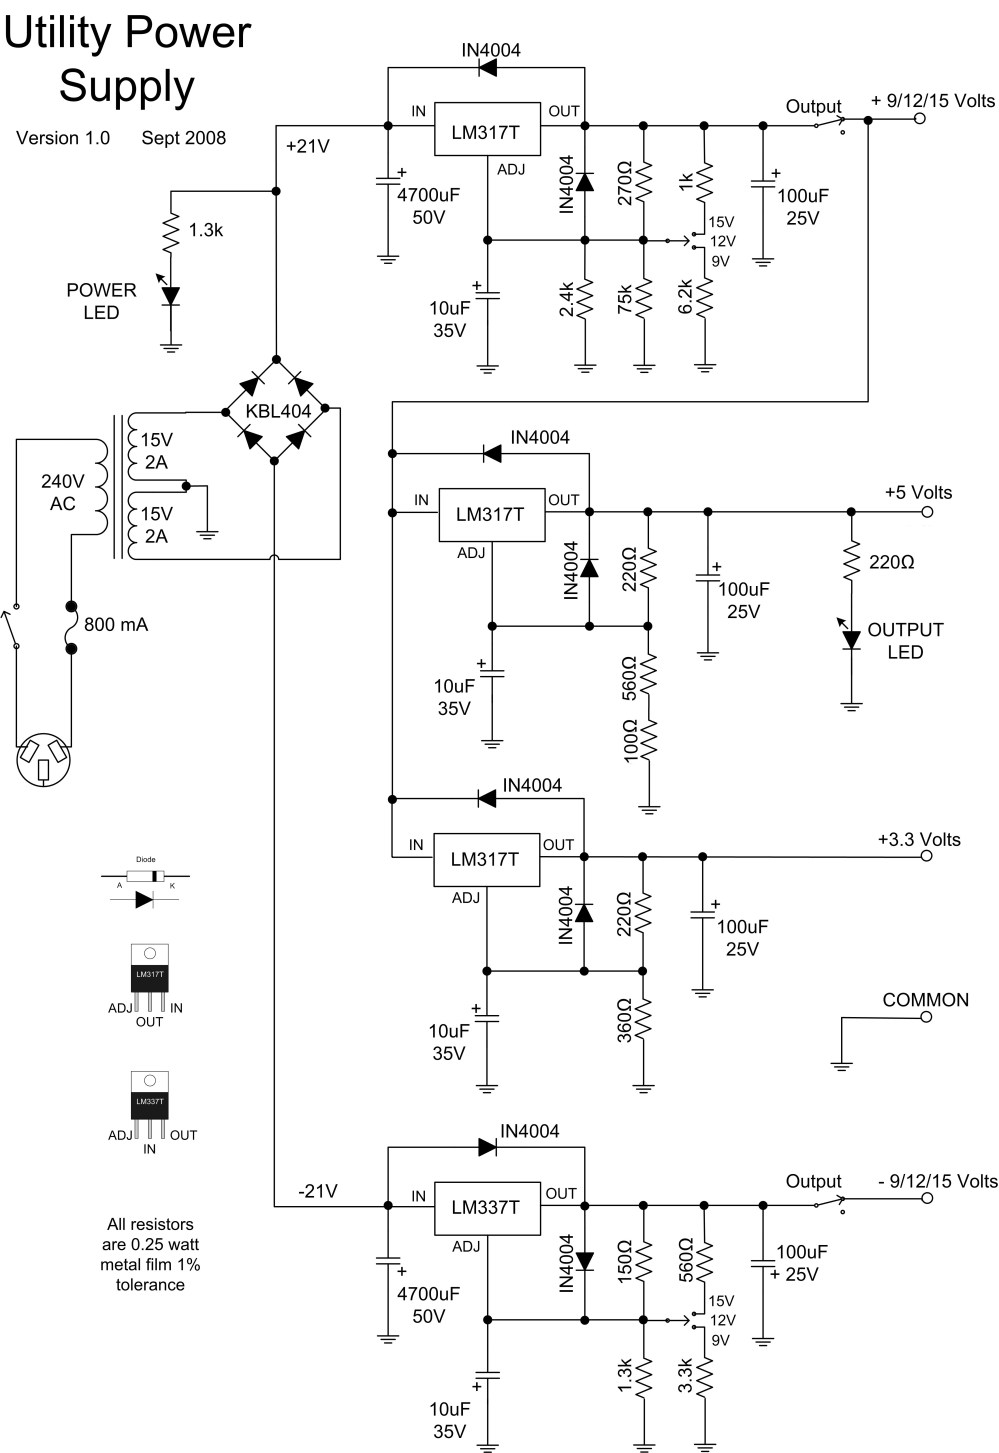 medium resolution of utility power supply v1 0 schematic download